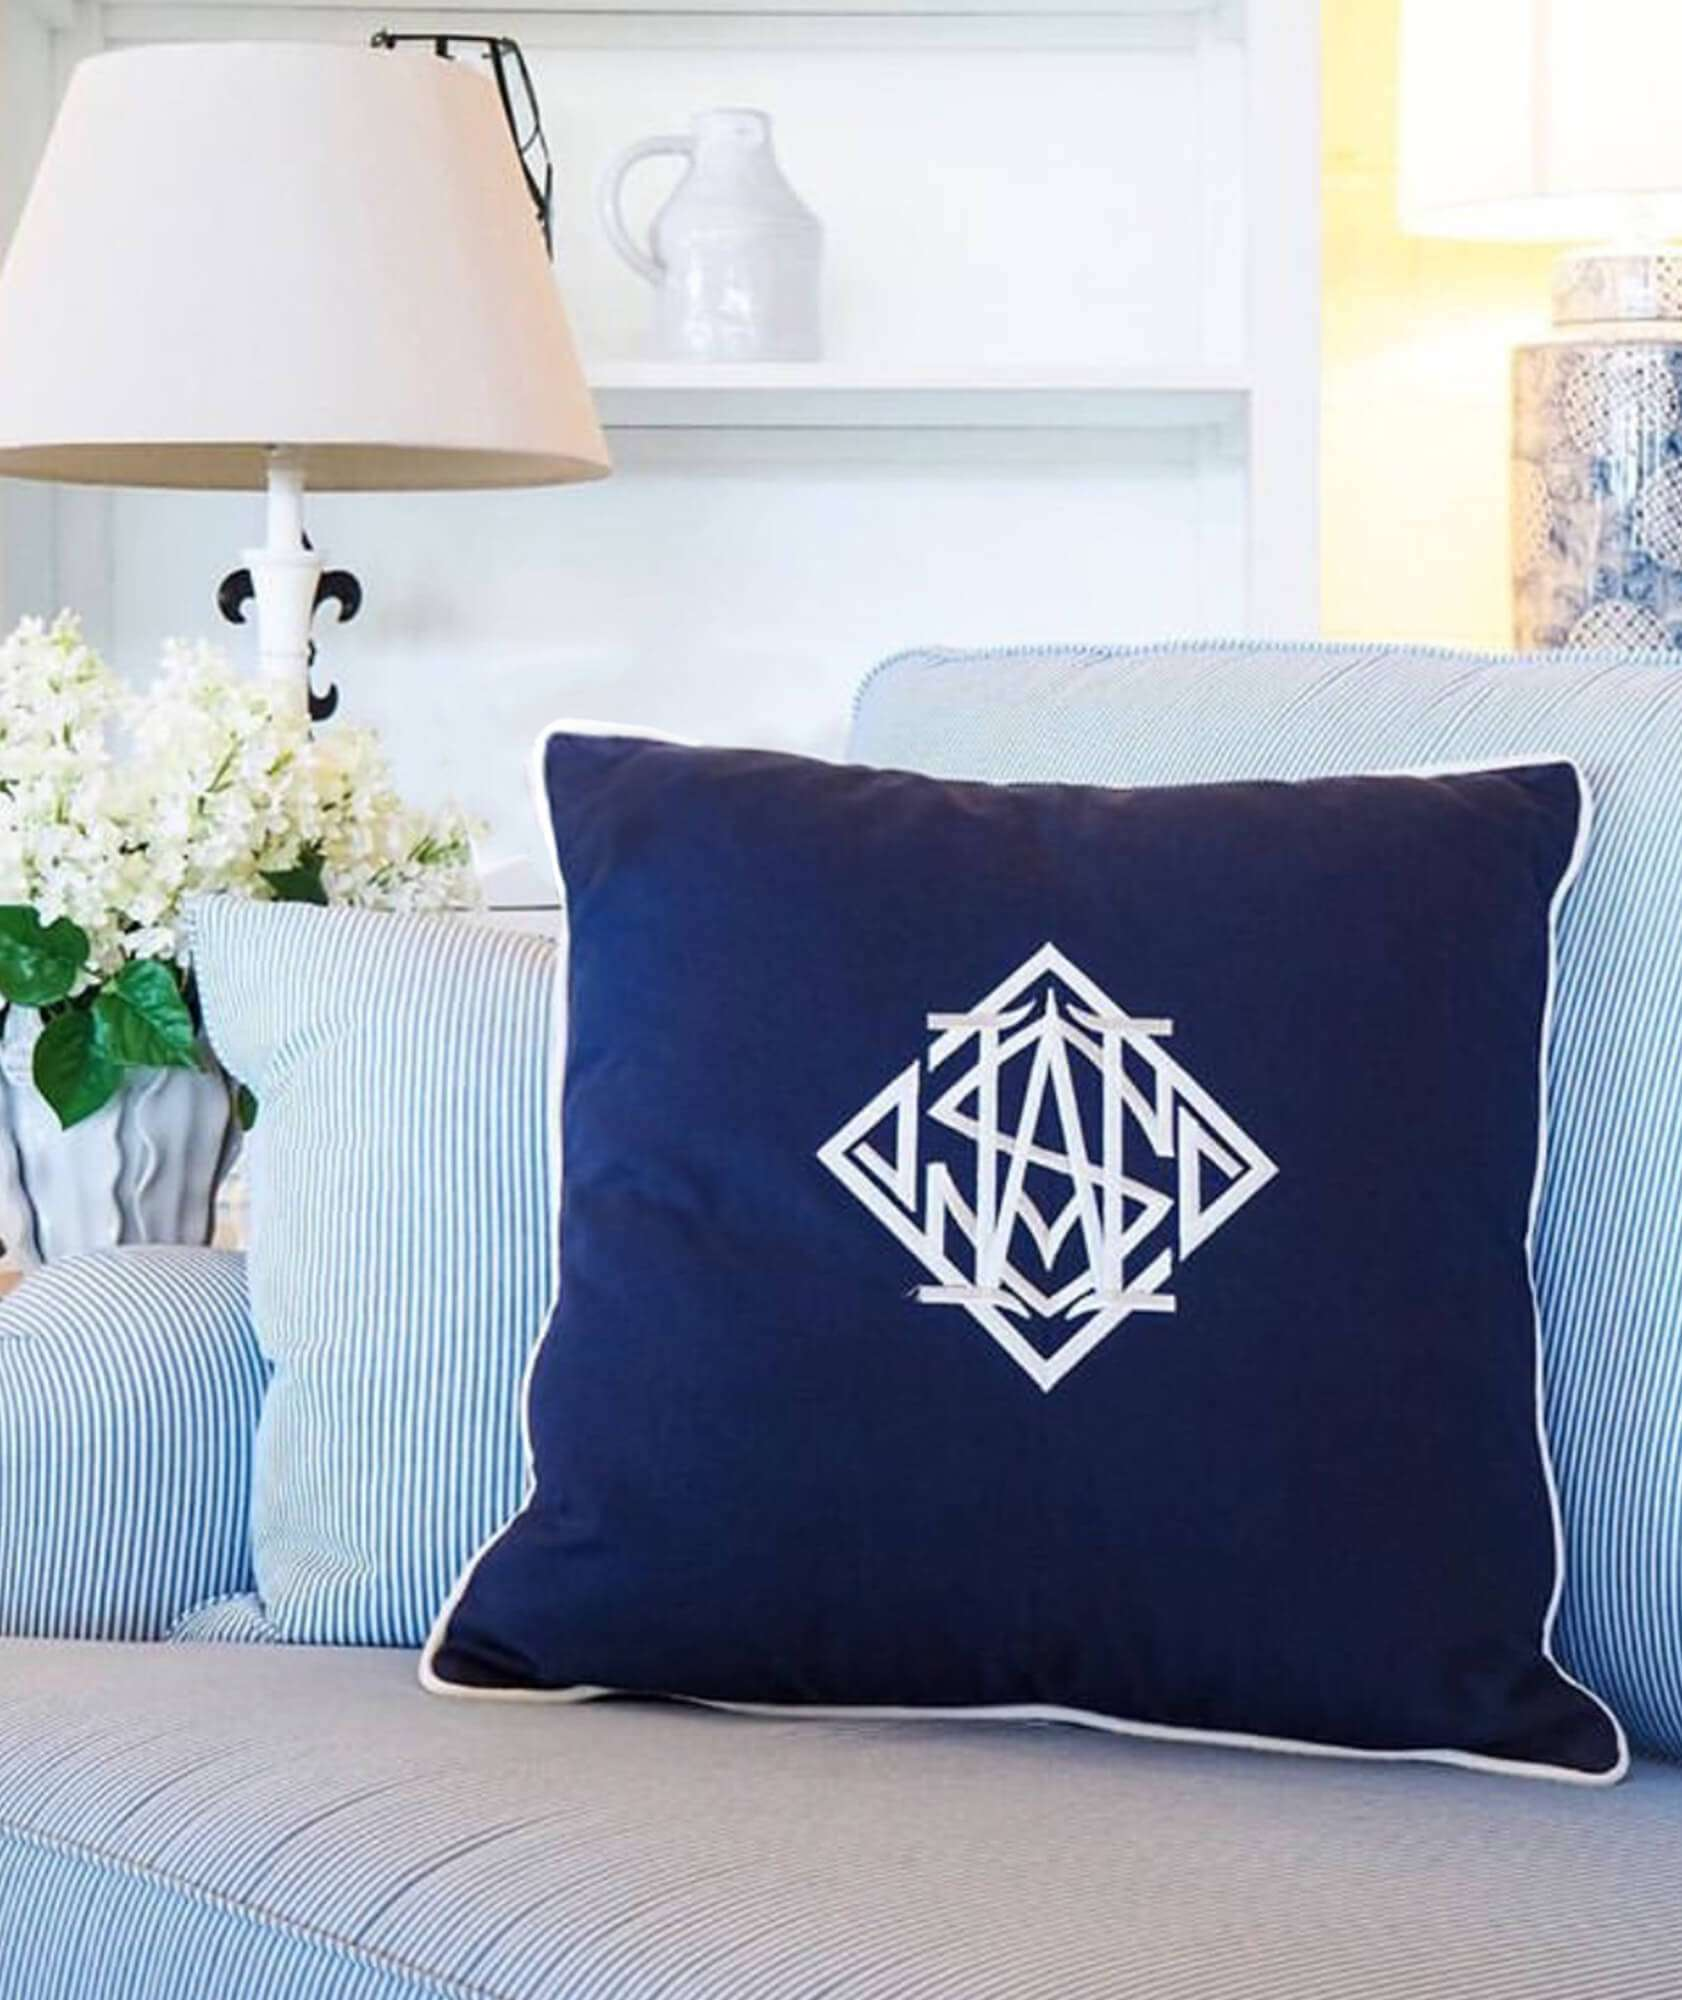 monogram pillow, monogram cushion, navy and white